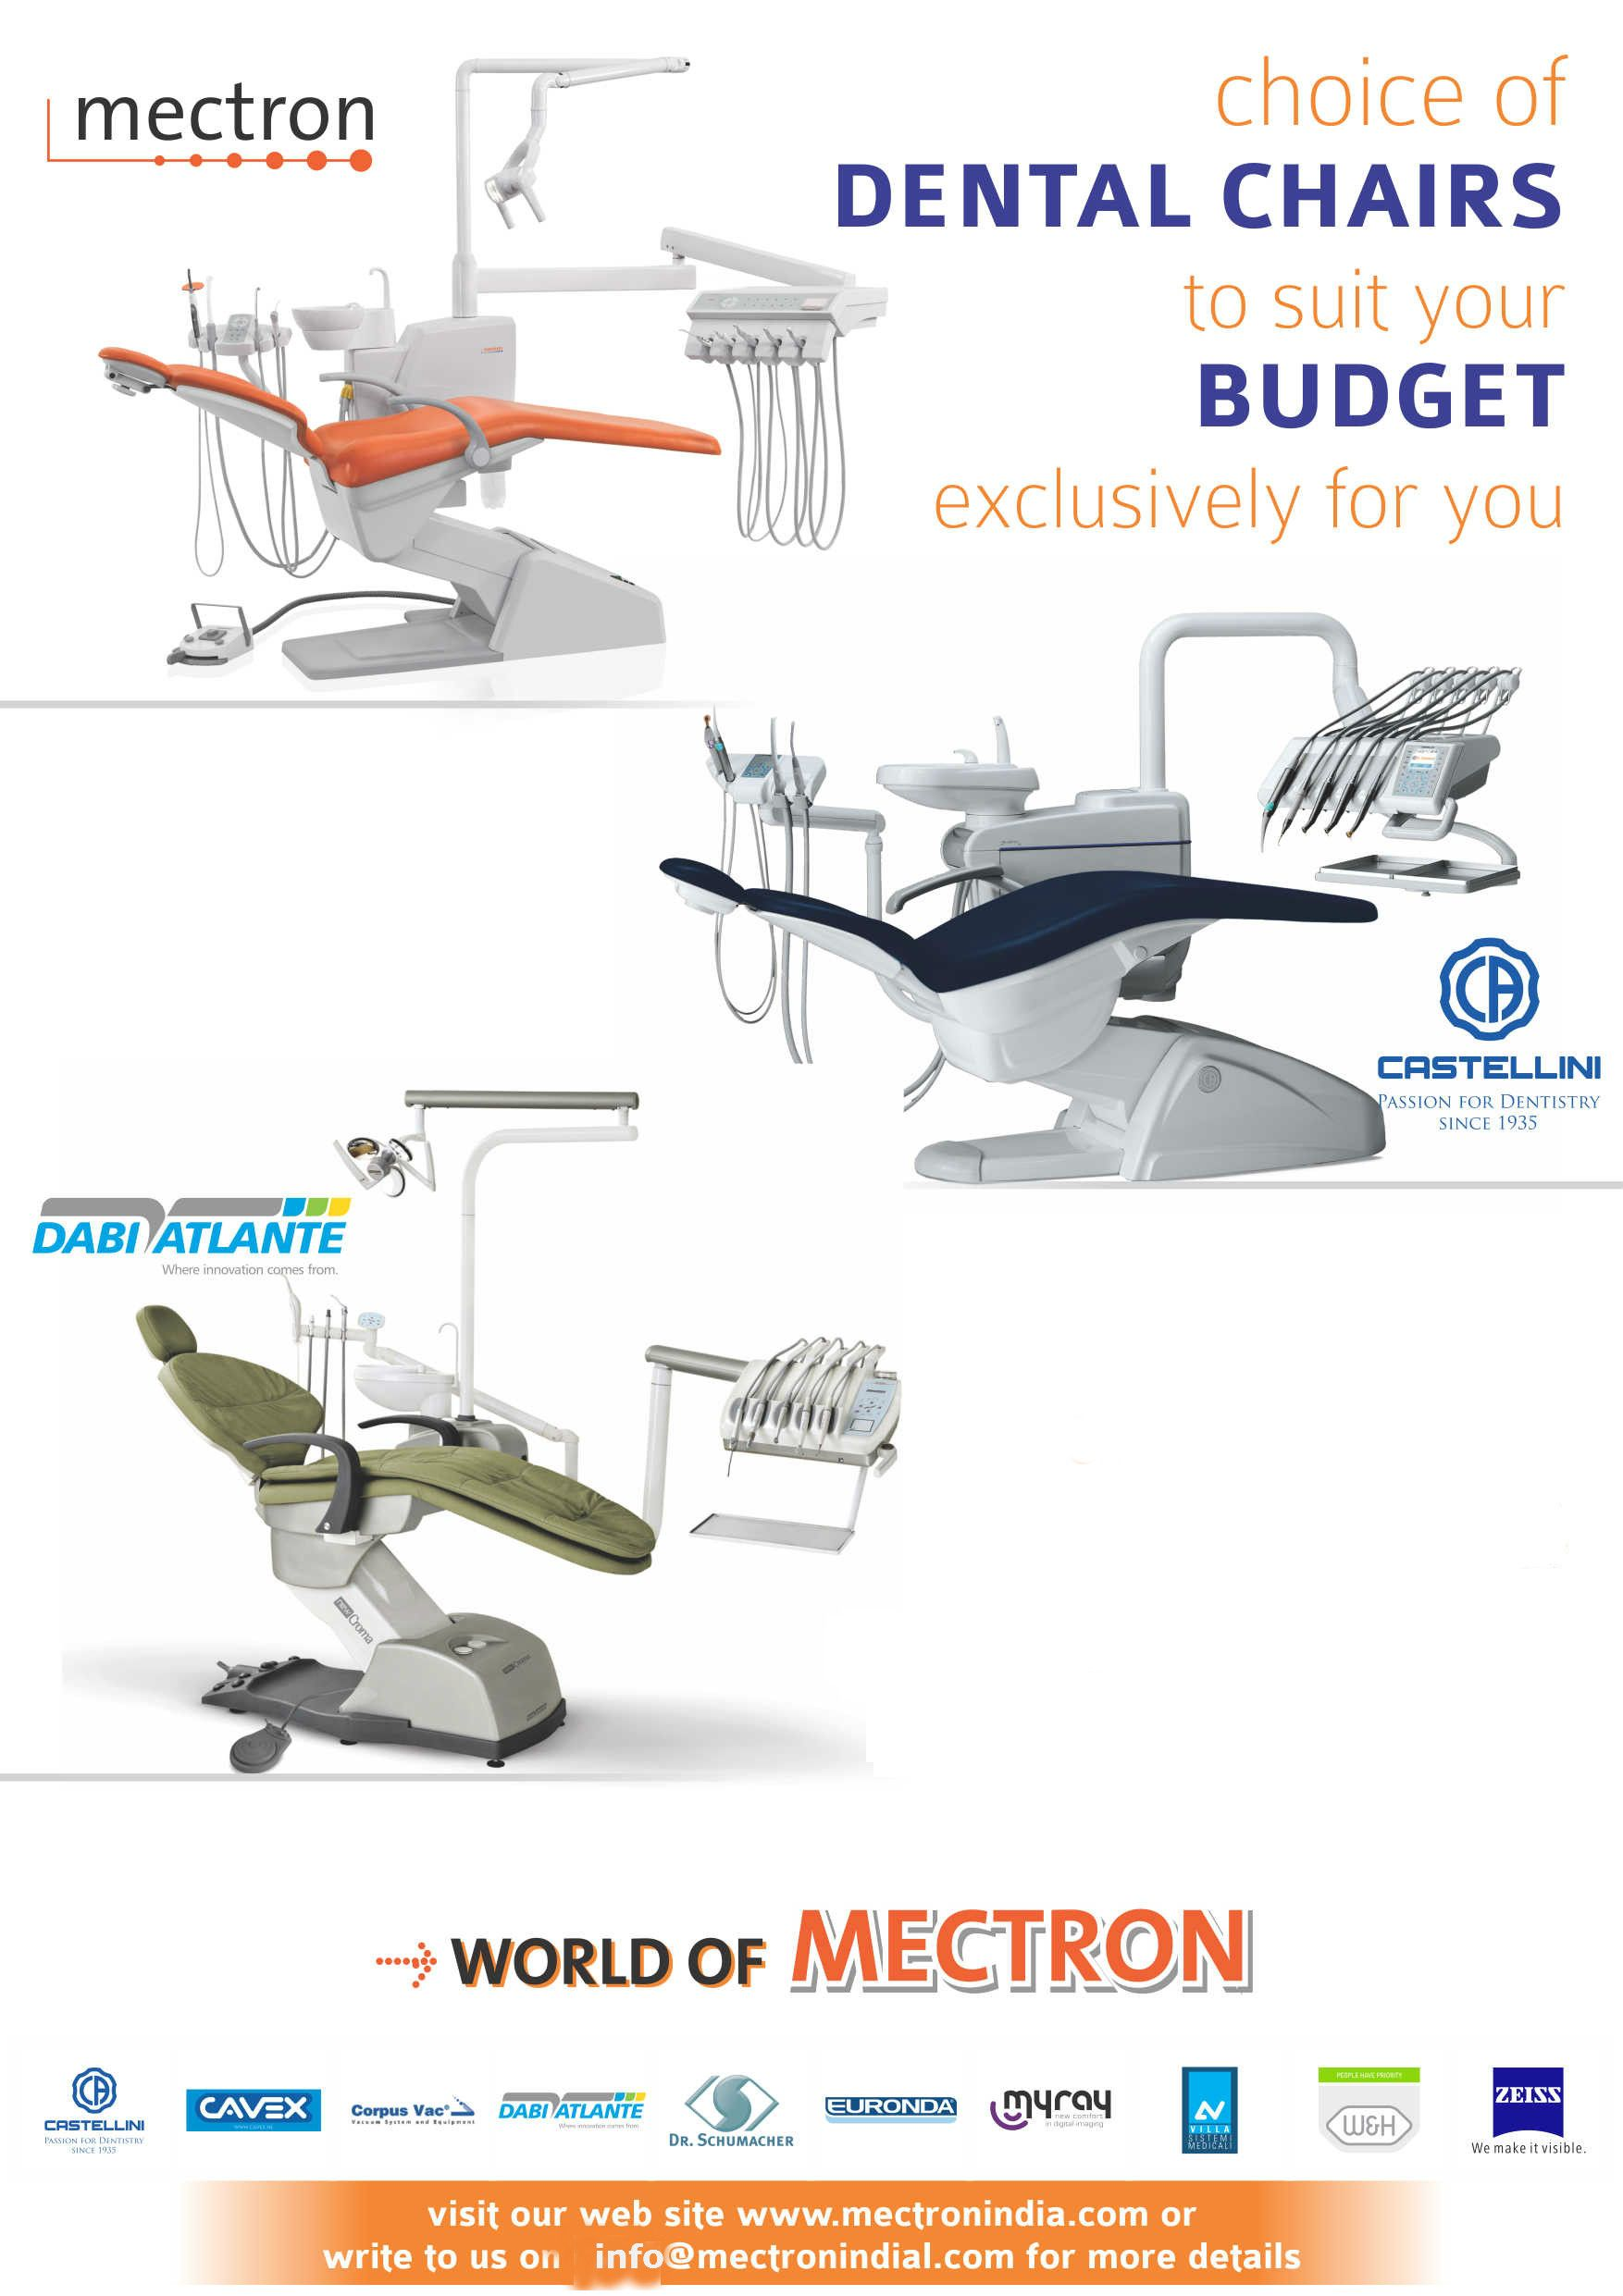 Choice of Dental Chairs to suit your BUDGET exclusive for you